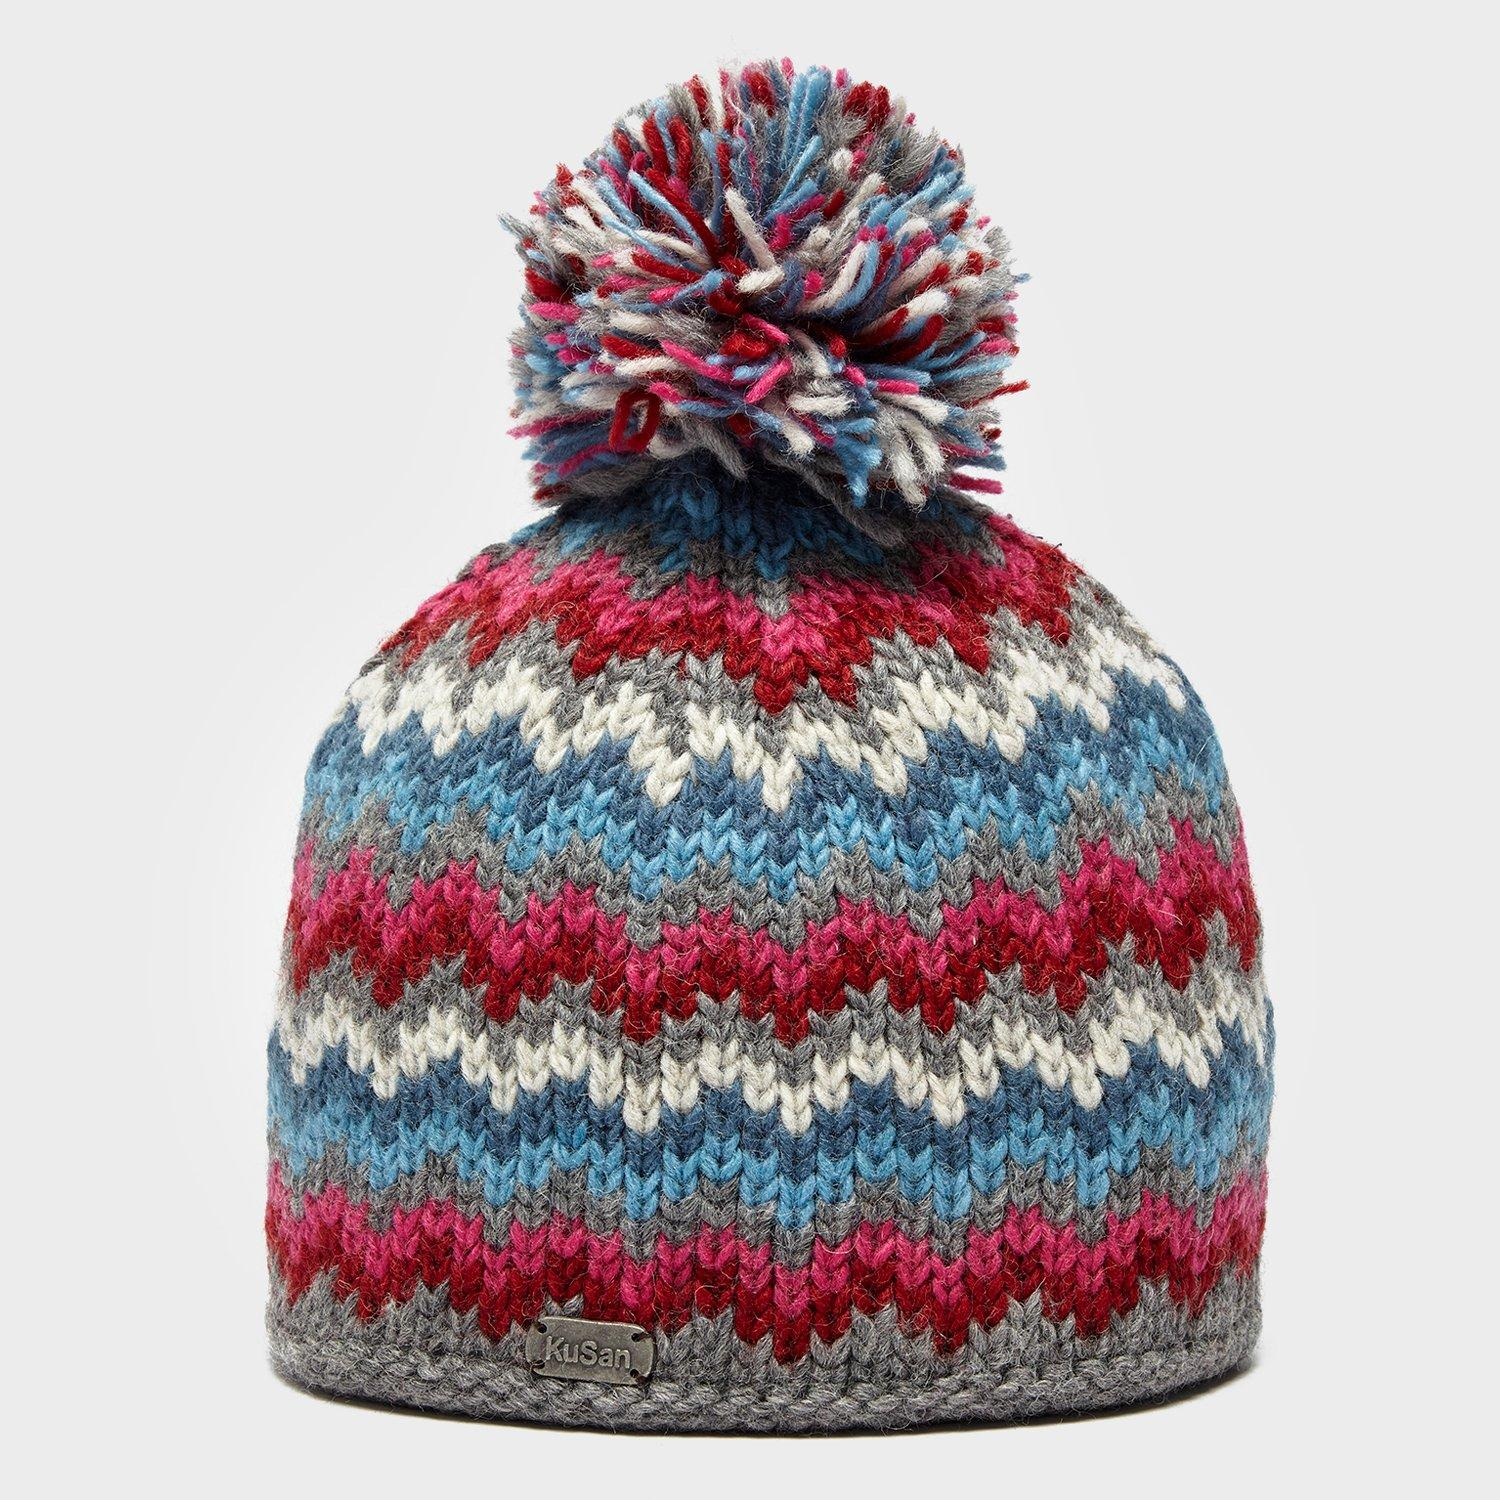 Kusan Women's Zigzag Bobble Hat, Grey